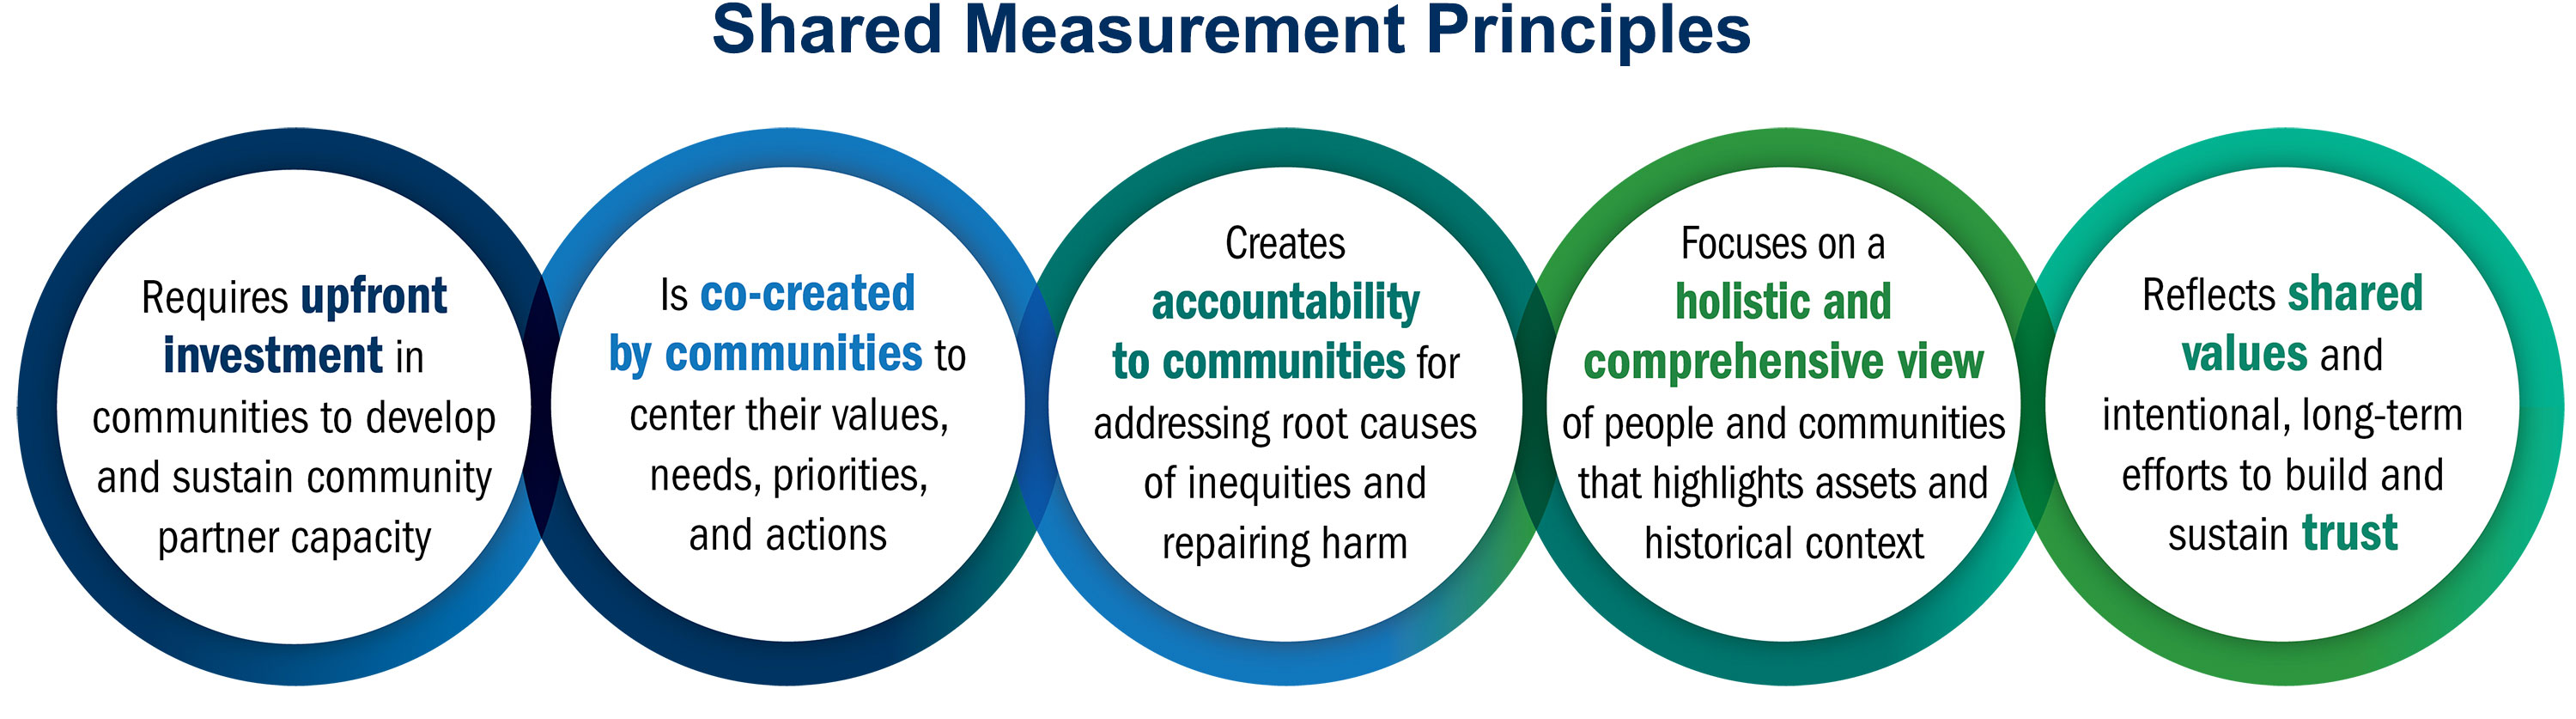 Graphic: Shared Measurement Principles